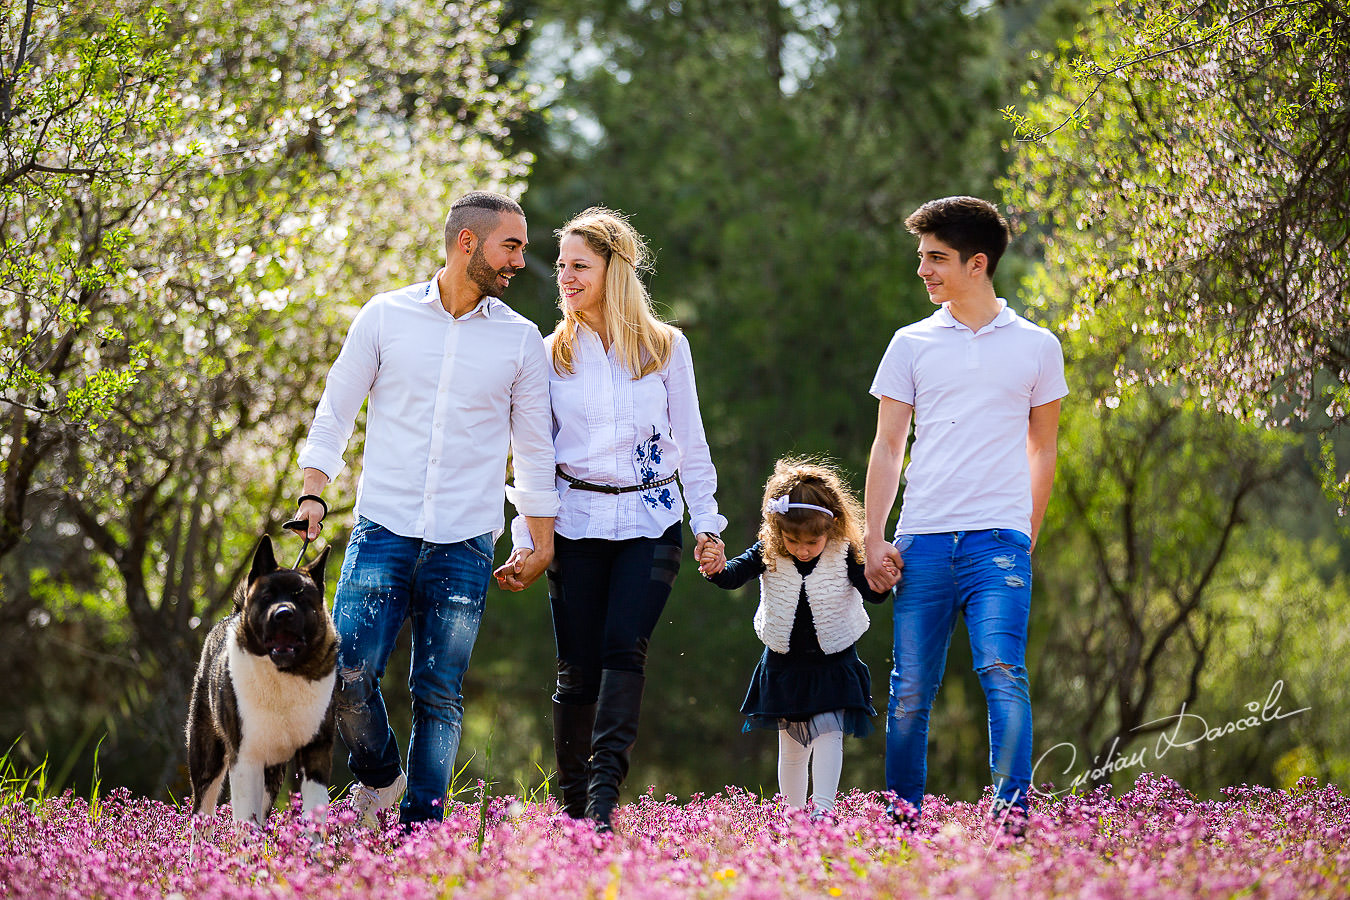 Eleonora and her family photographed in Klirou village, Nicosia district, during an amazing family photography in Nicosia by Cyprus Photographer Cristian Dascalu.